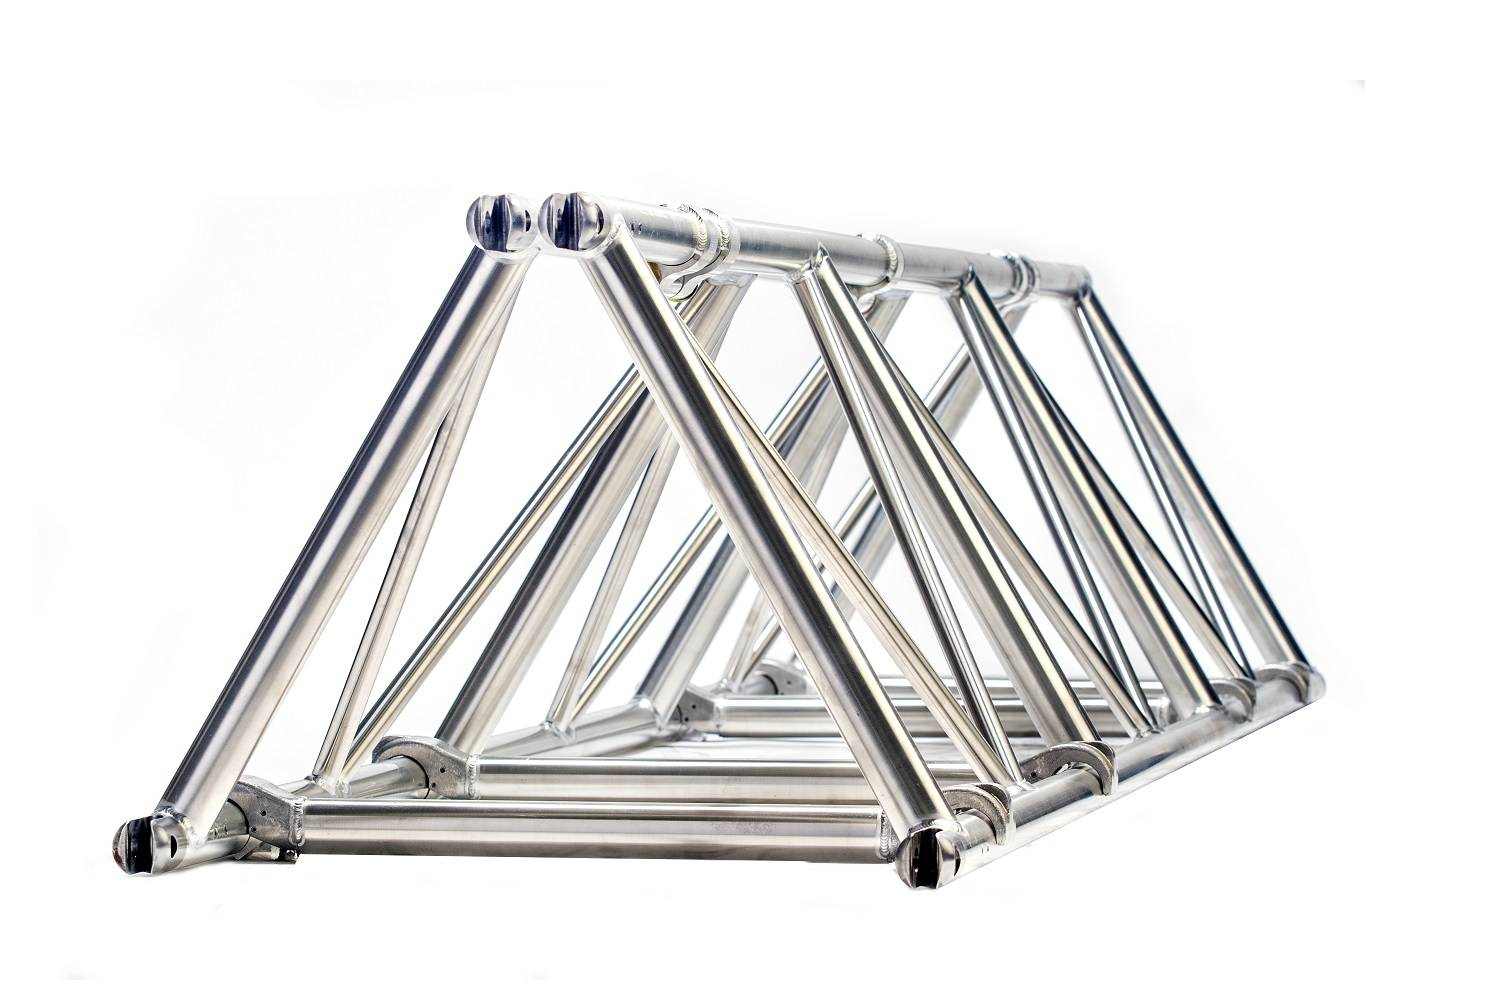 Folding triangle truss 26 spigoted